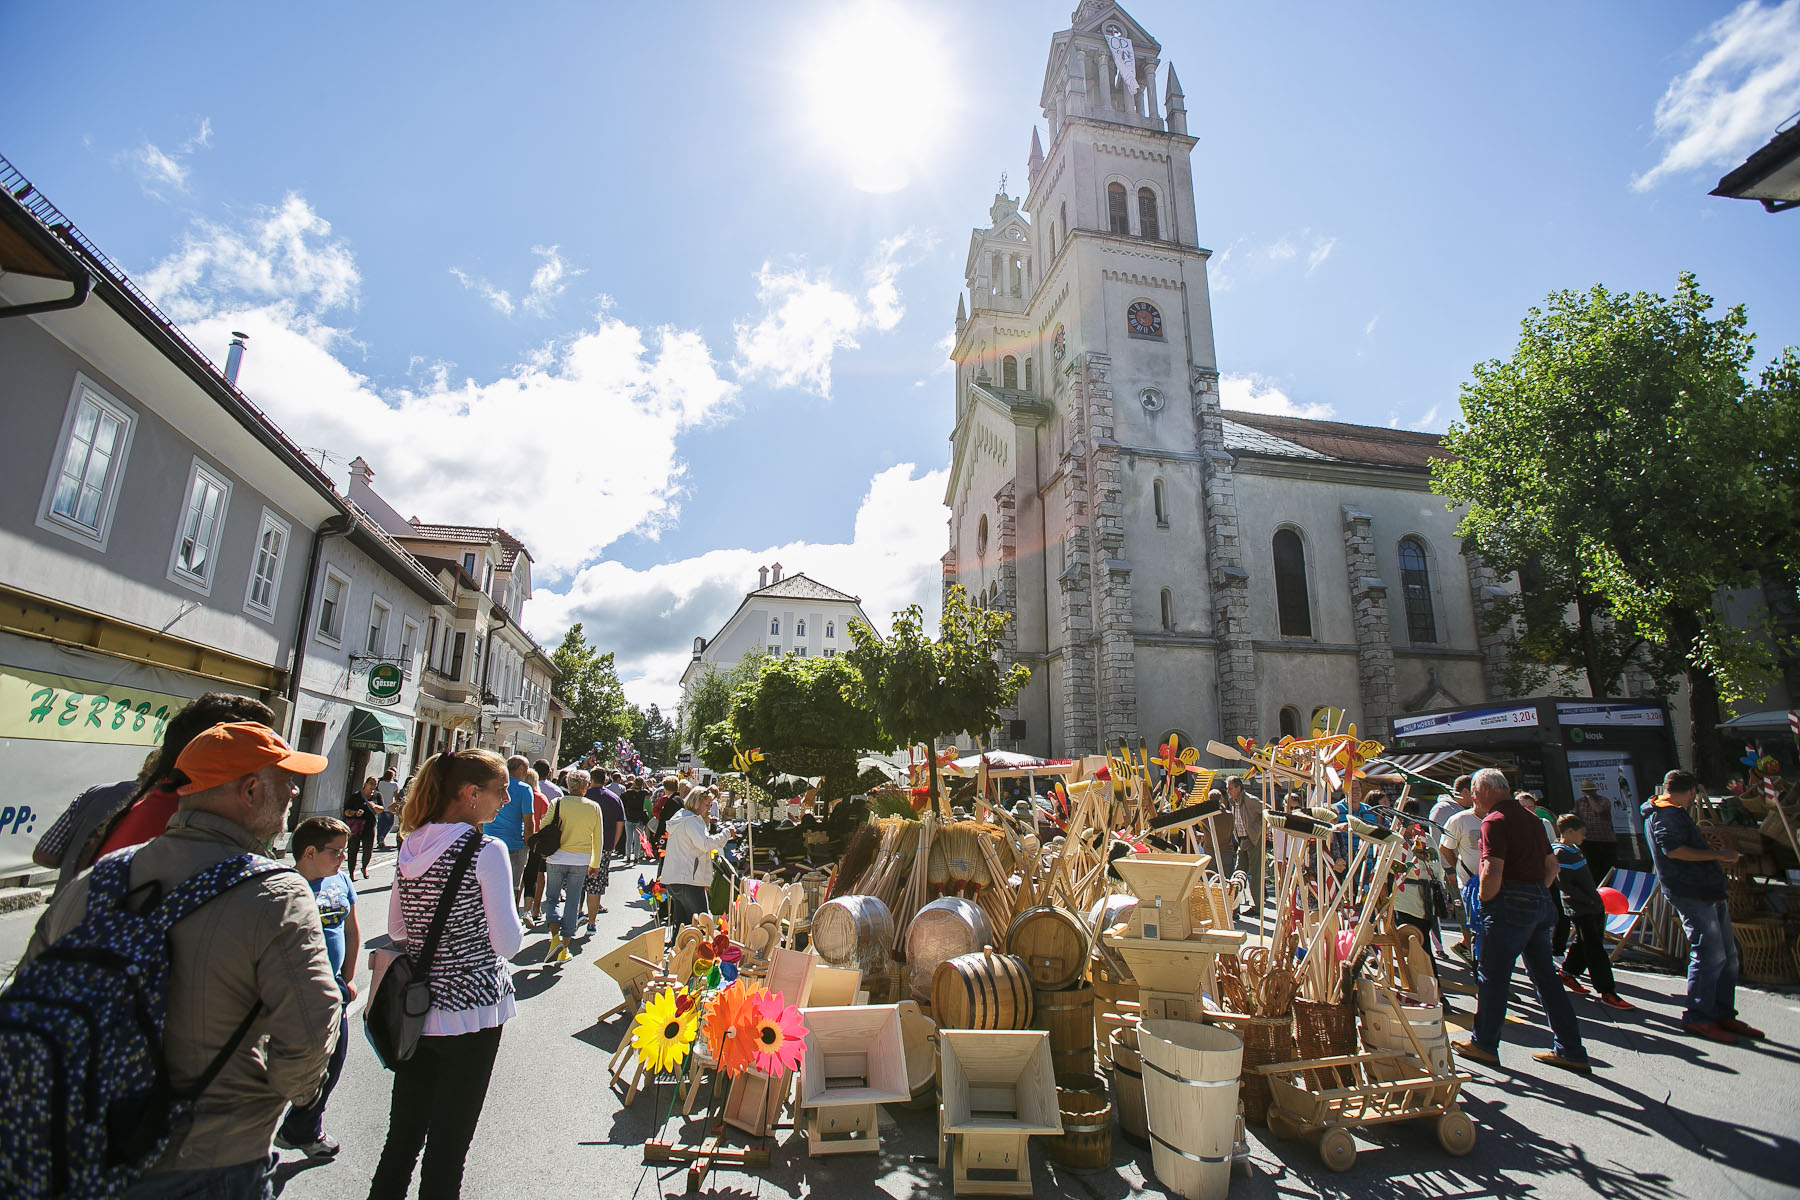 Woodenware on display in Ribnica, Slovenia, during the 40th traditional woodenware fair, Sep. 6, 2015.